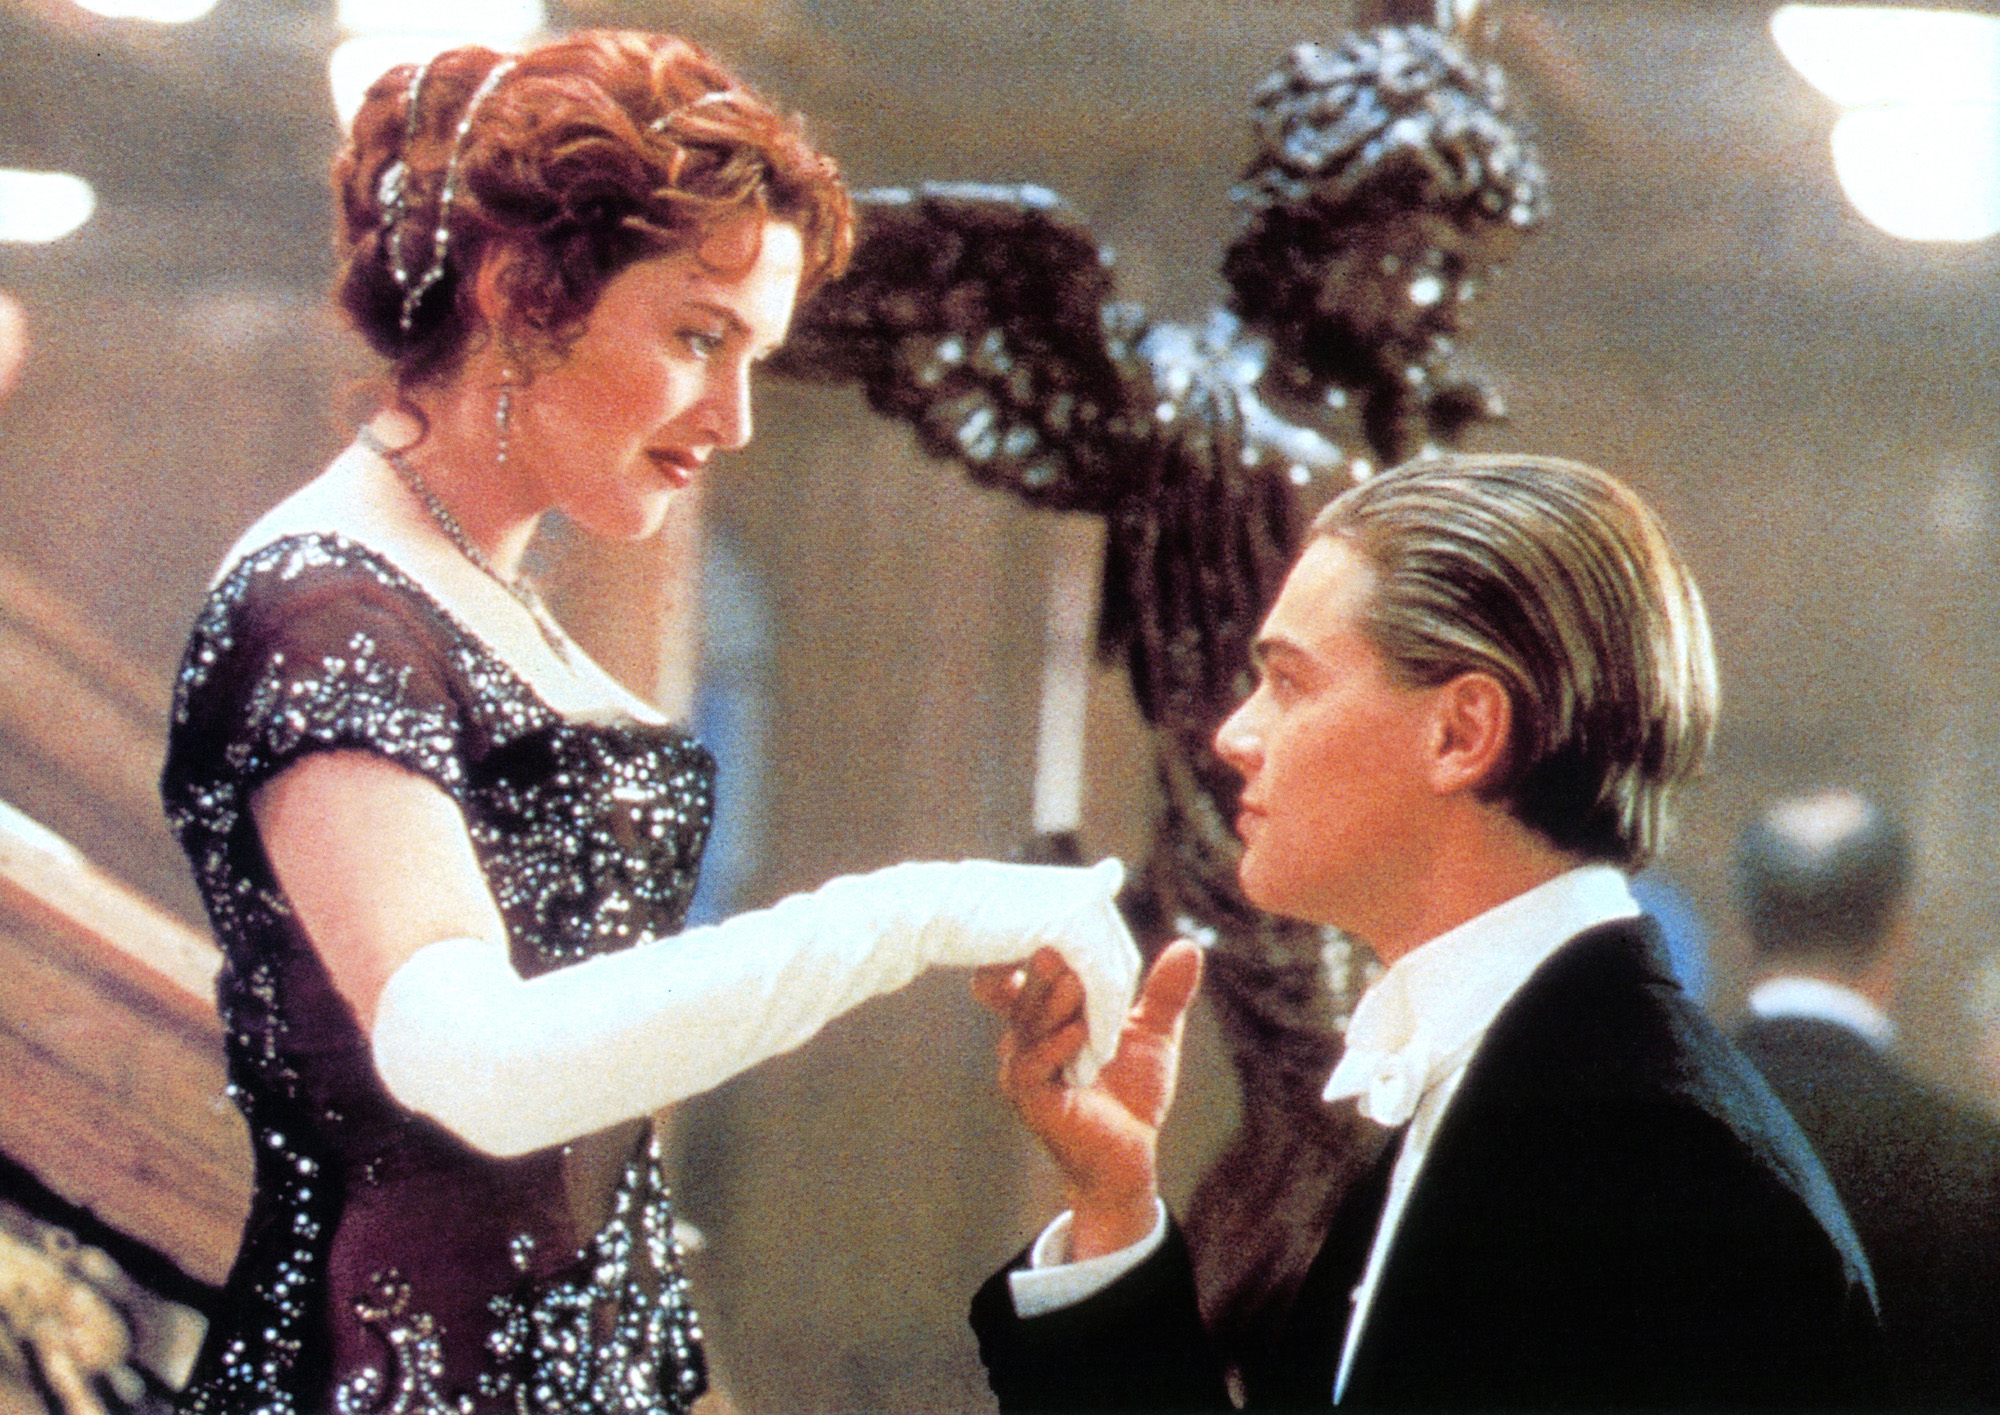 Kate Winslet offers her hand to Leonardo DiCaprio in a scene from the film 'Titanic', 1997.